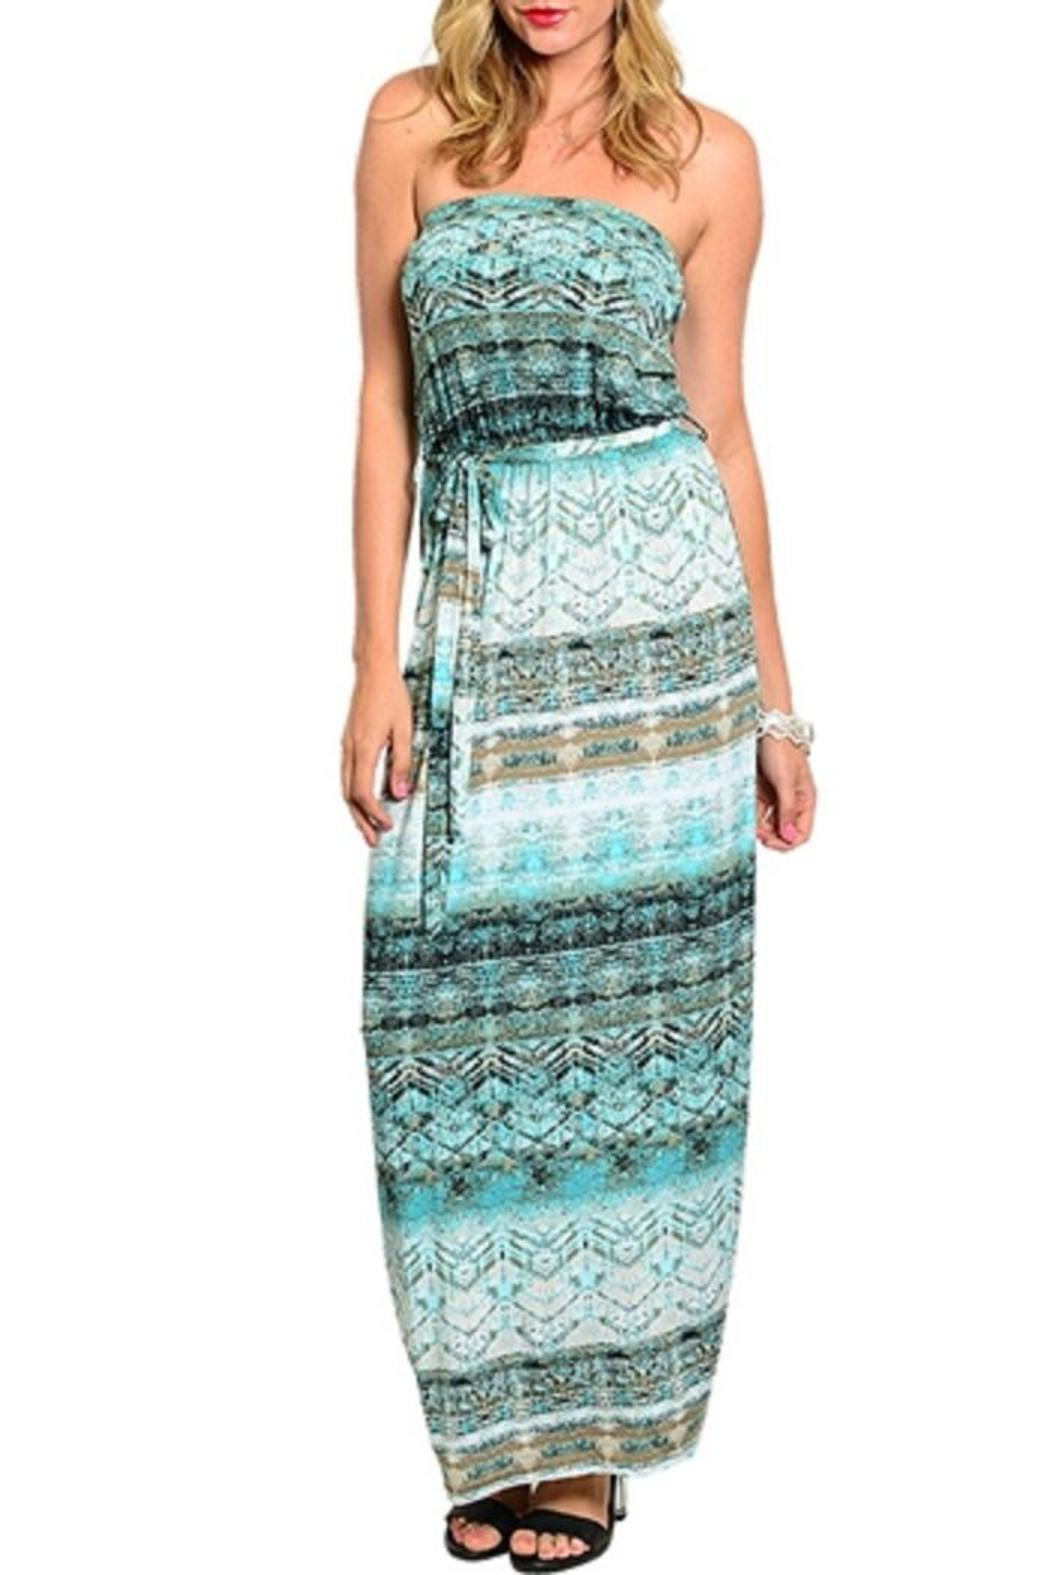 Adore Clothes & More Mint Brown Dress - Main Image